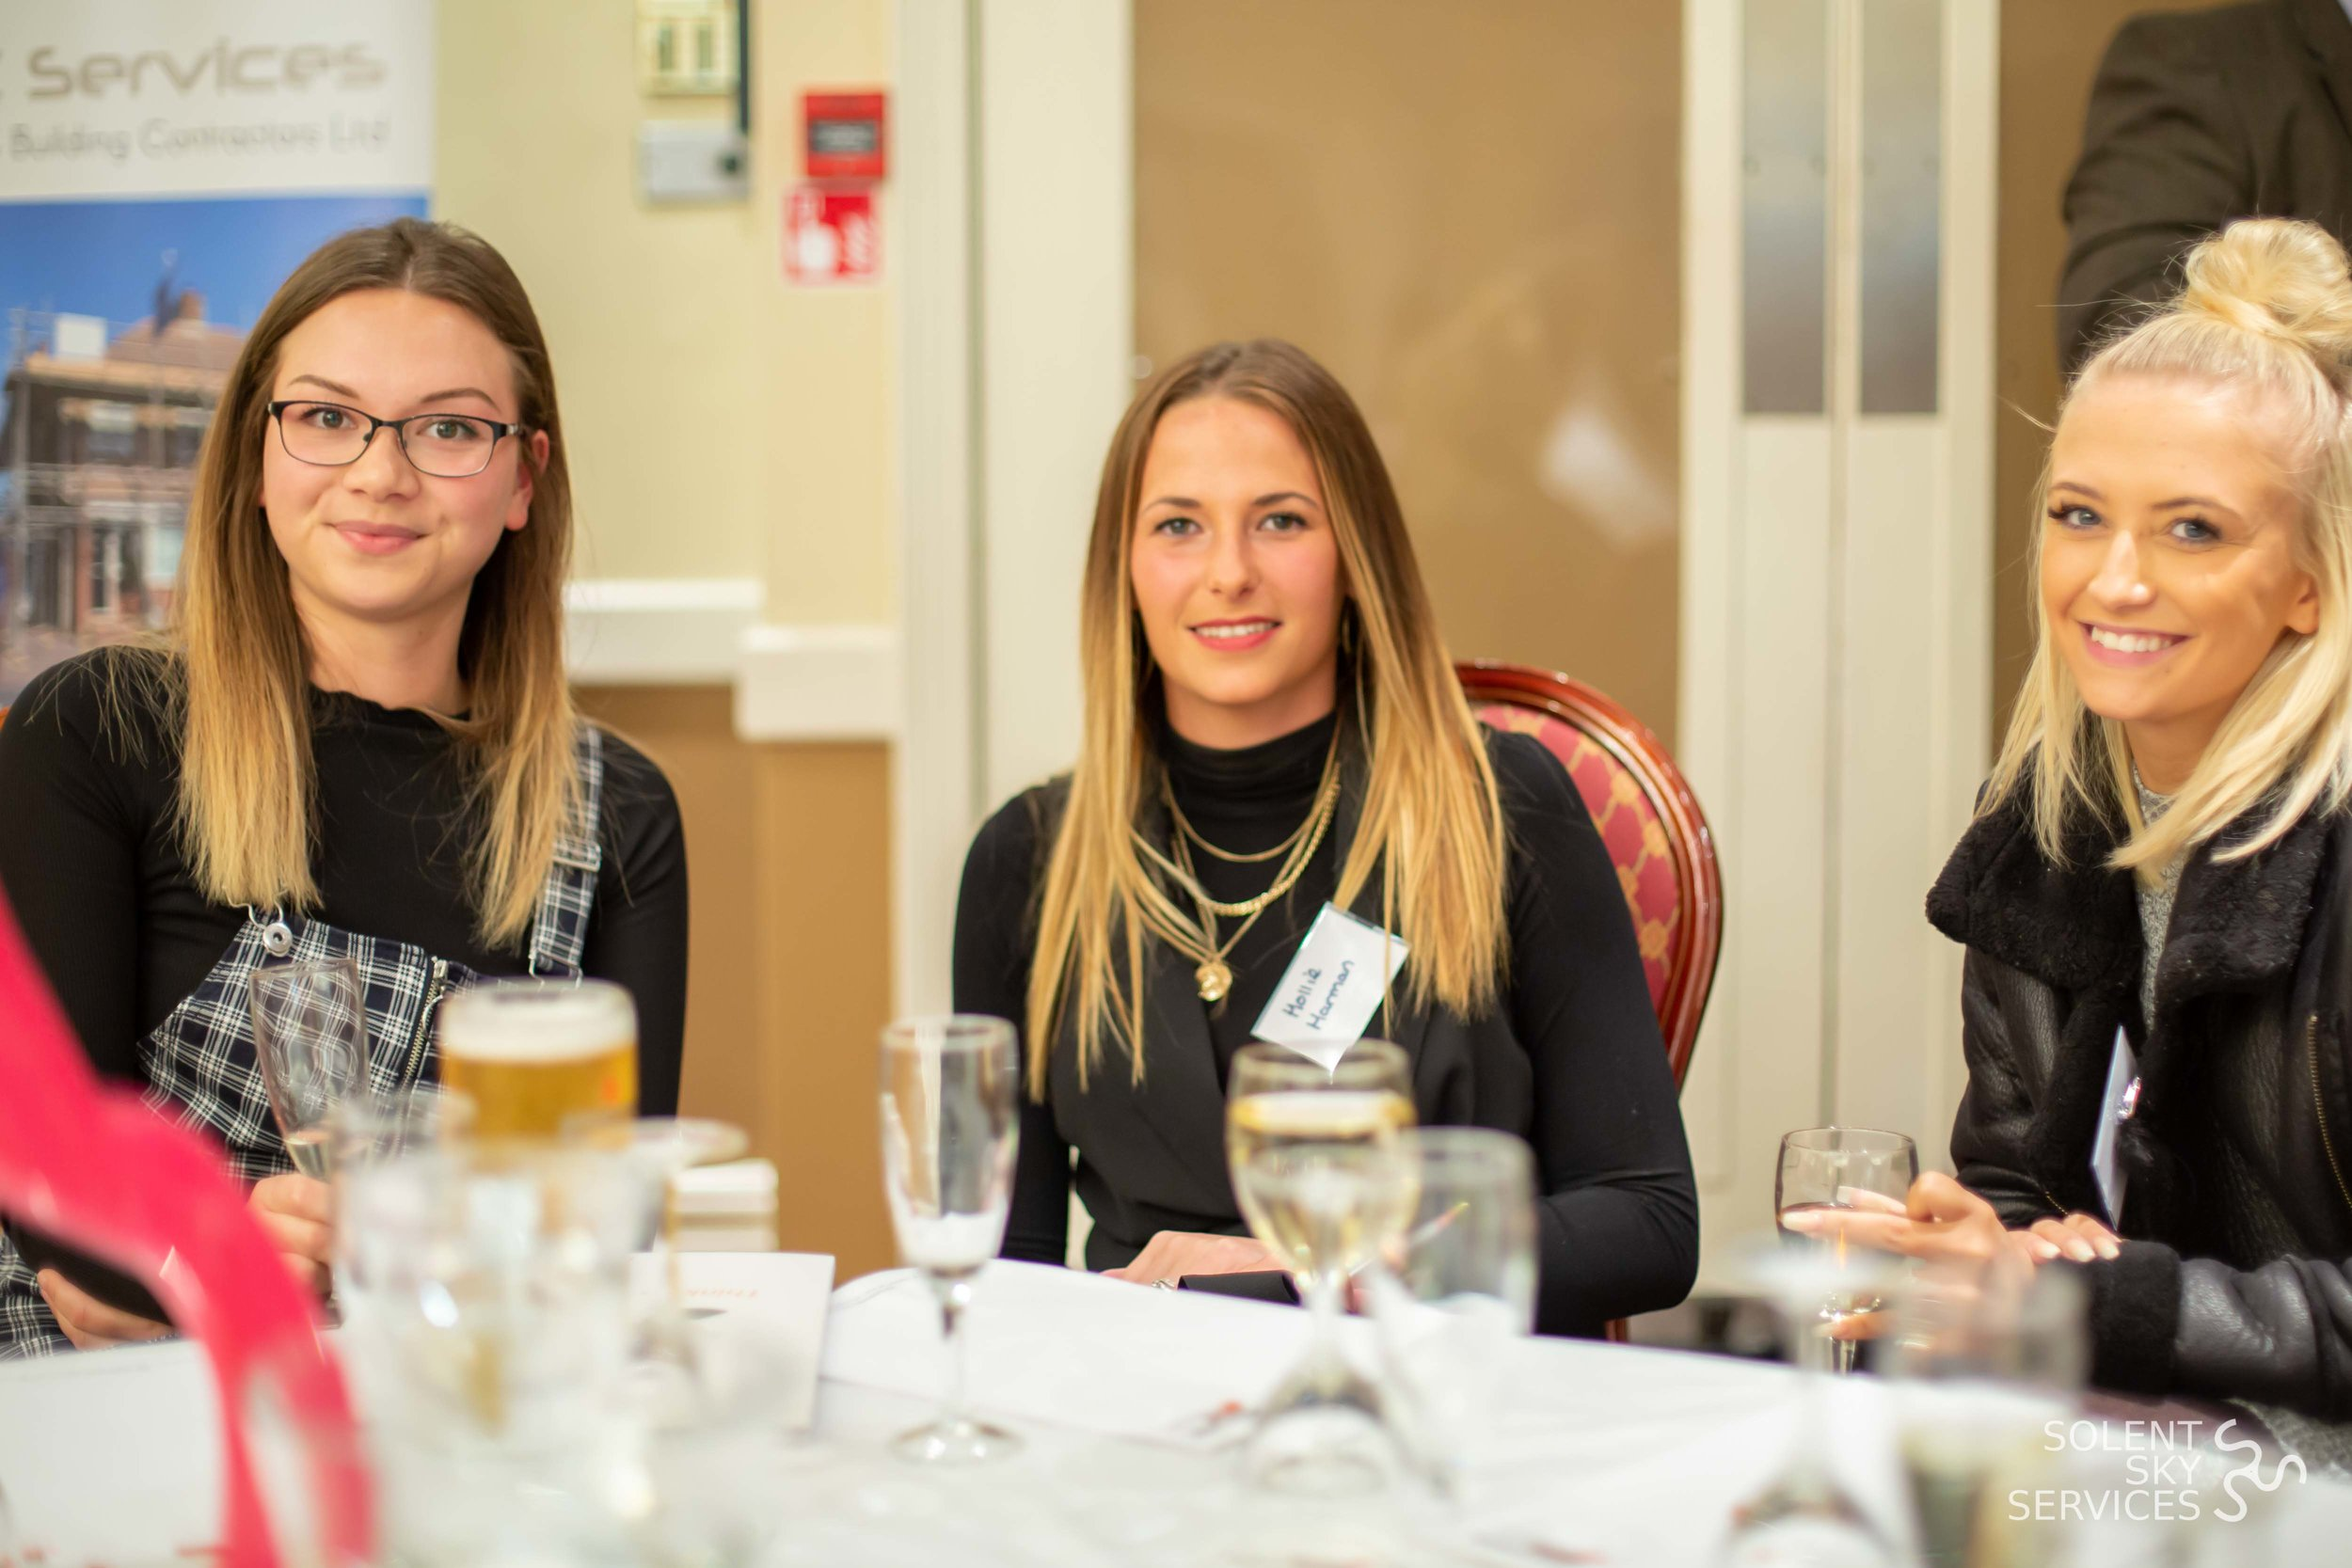 Synergy Success Networking Event #2 - Solent Sky Services-18.JPG